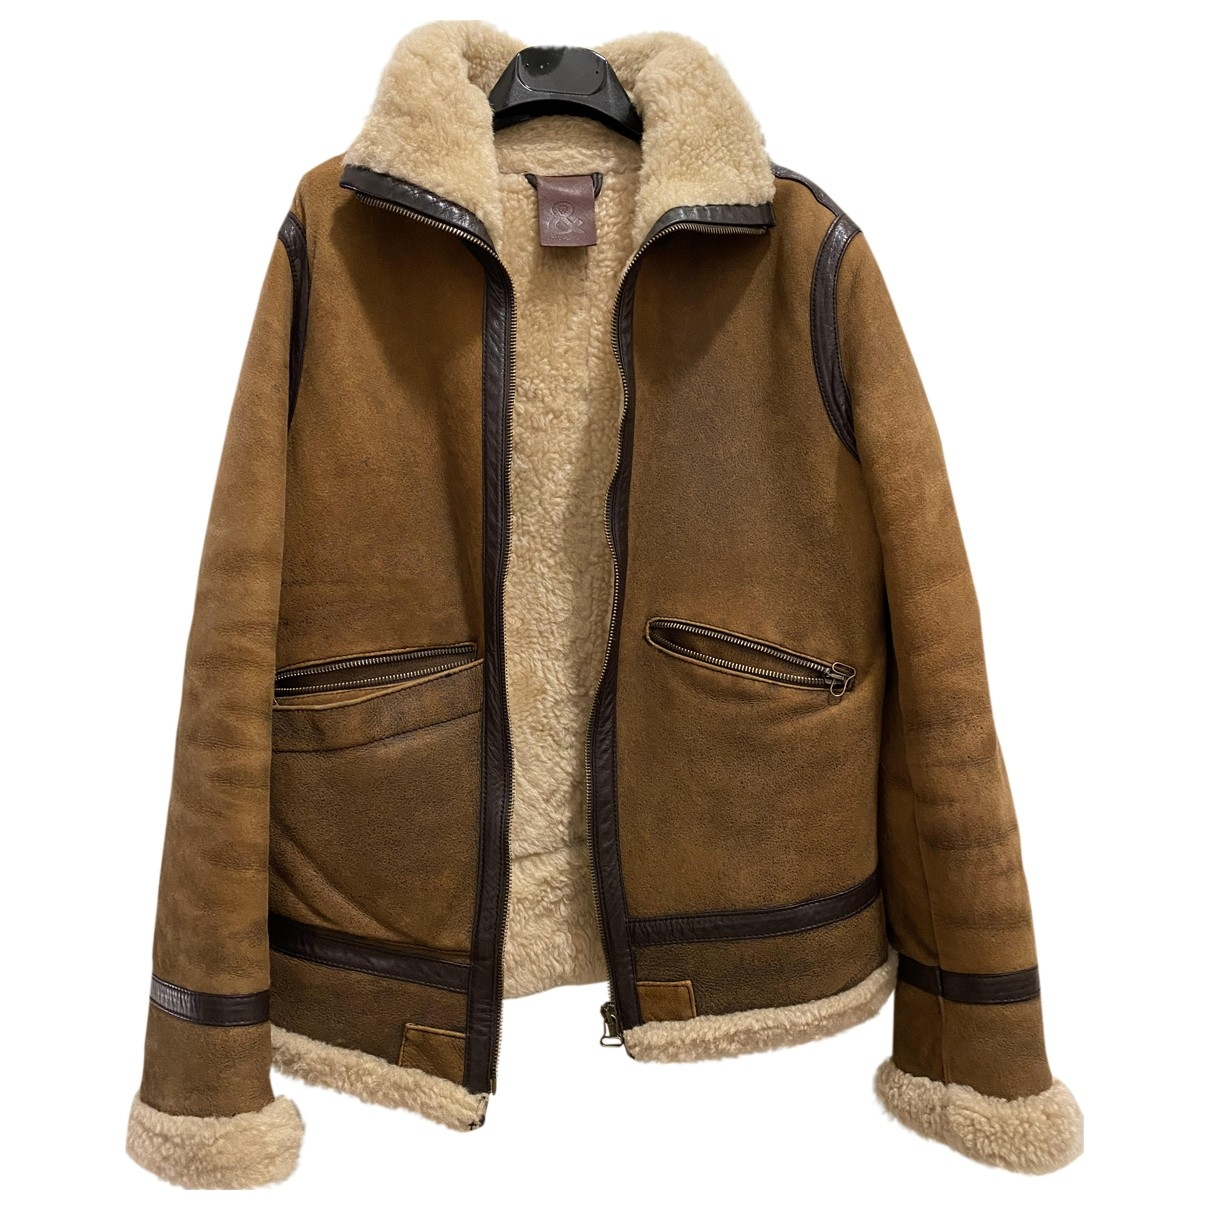 D&g \N Brown Shearling Leather jacket for Women 40 IT